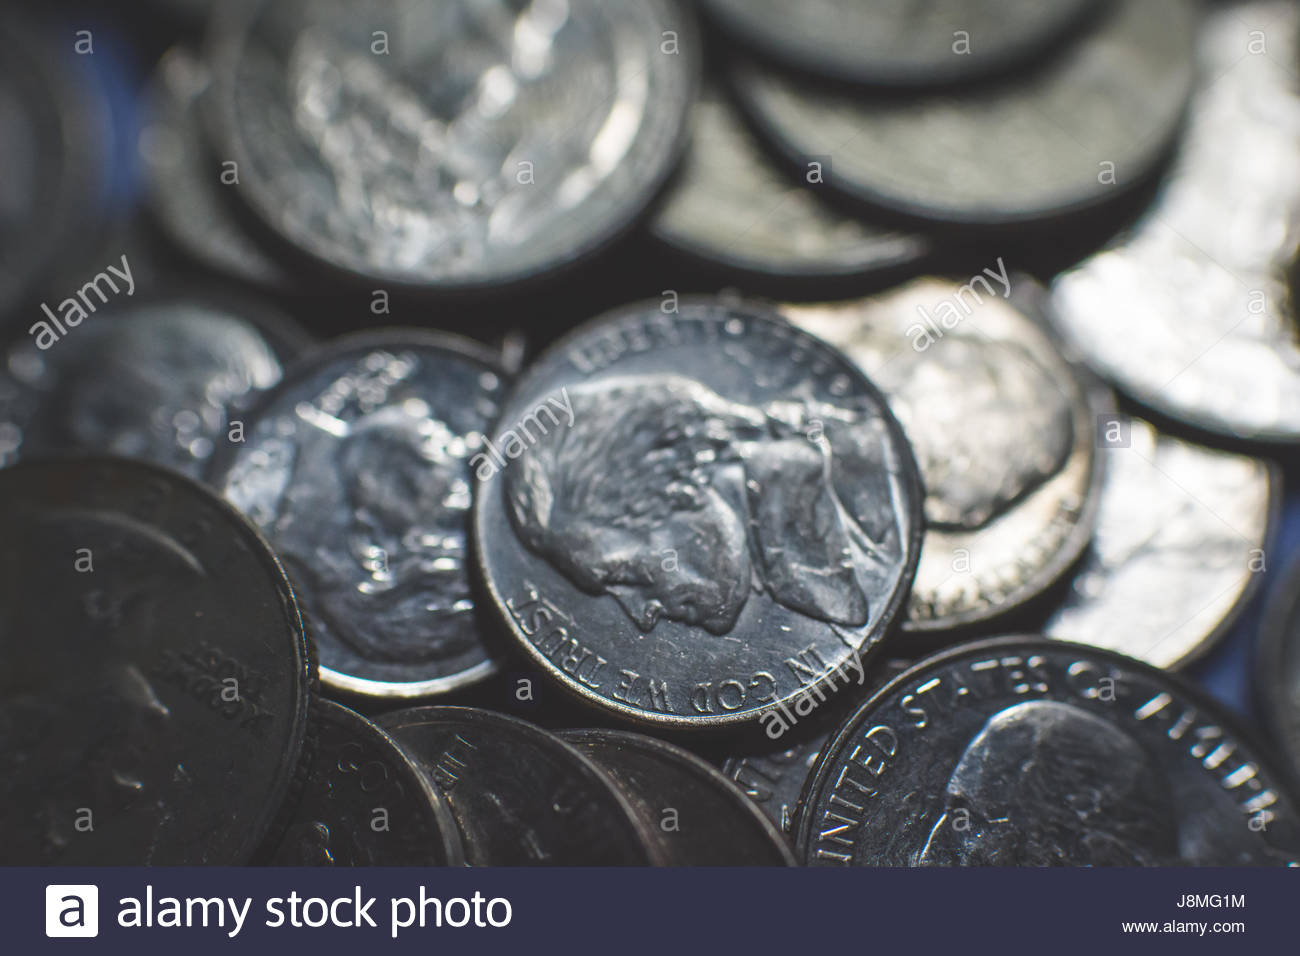 A Pile Of American Currency Coins Including Quarters